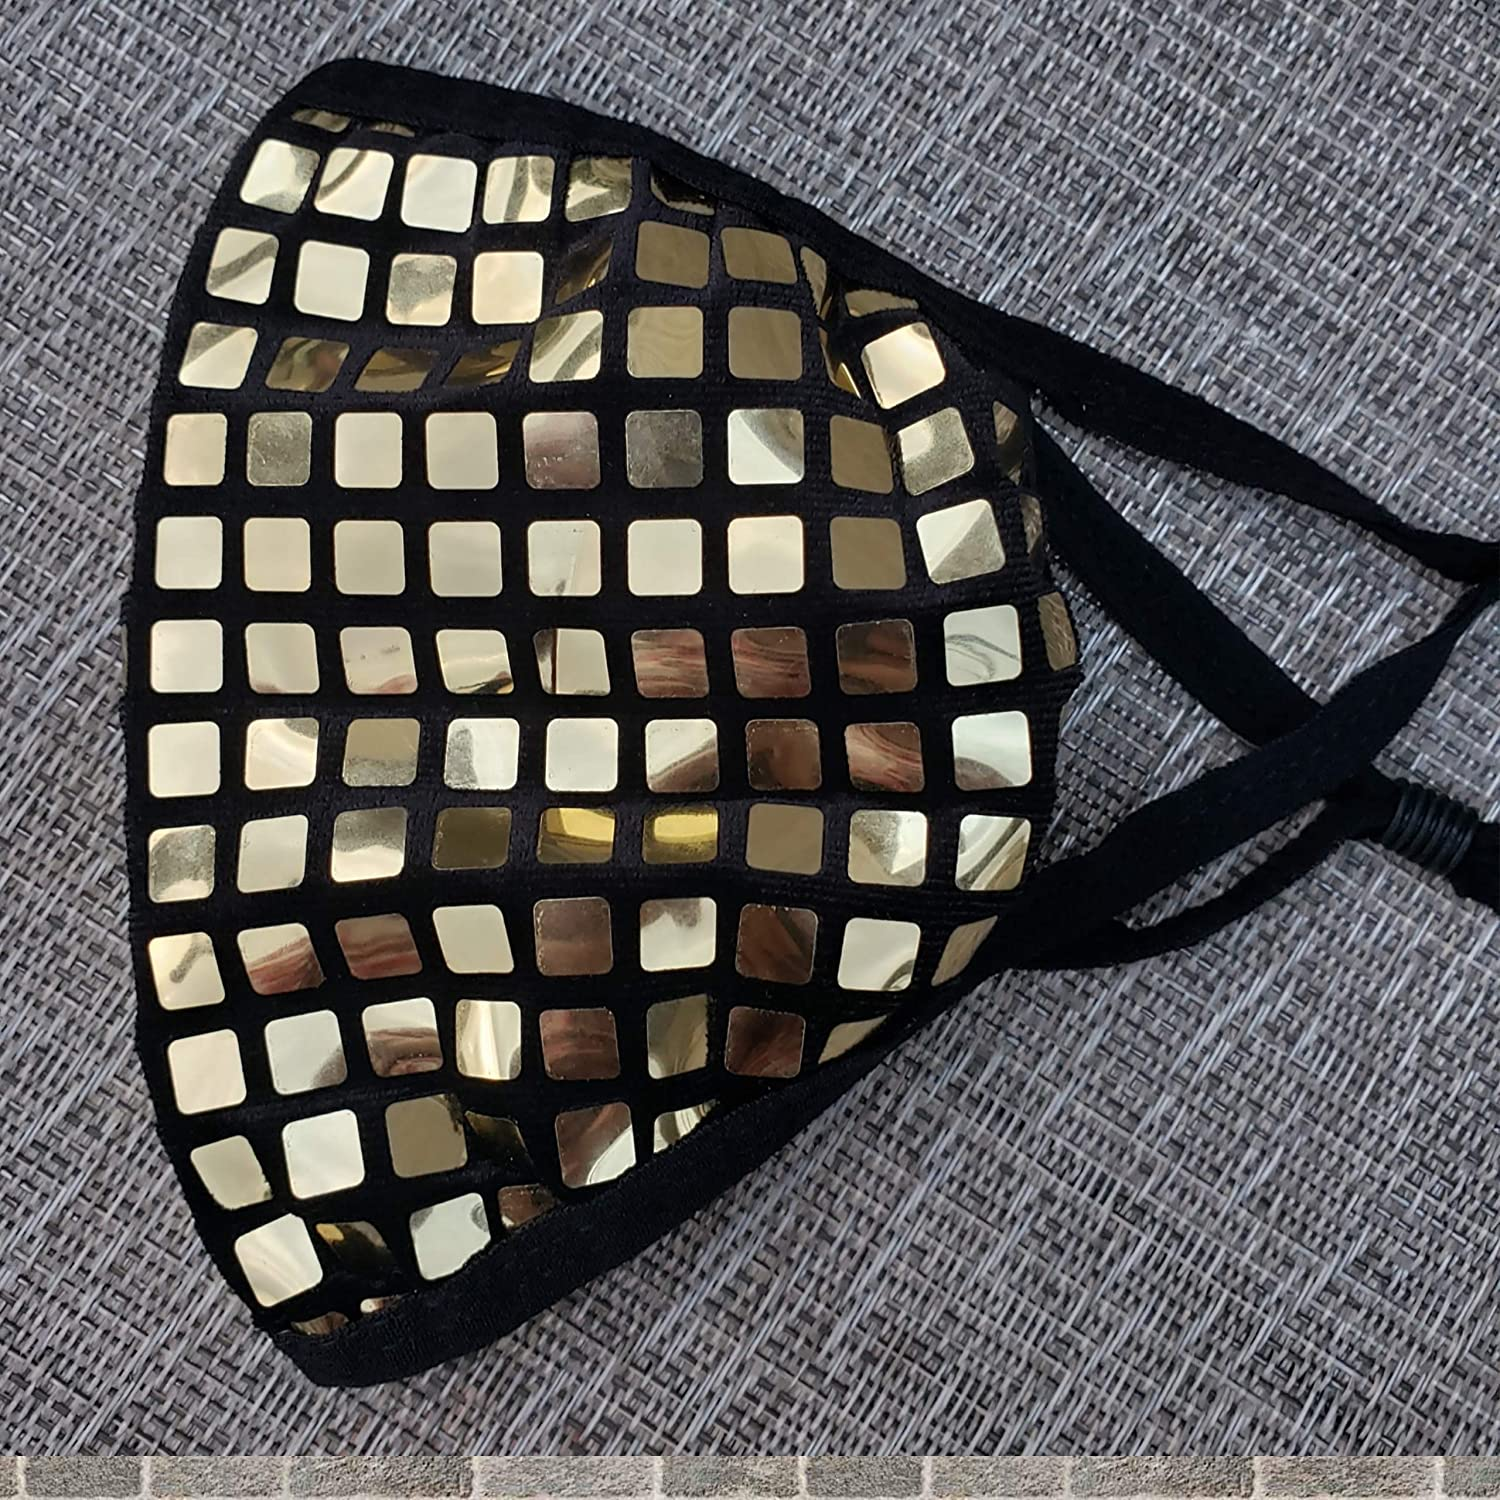 Designer Cute Face Masks for Women Girls Bling Fancy Stylish Fashion Washable Face Masks for Dust Protection Cloth Mask.